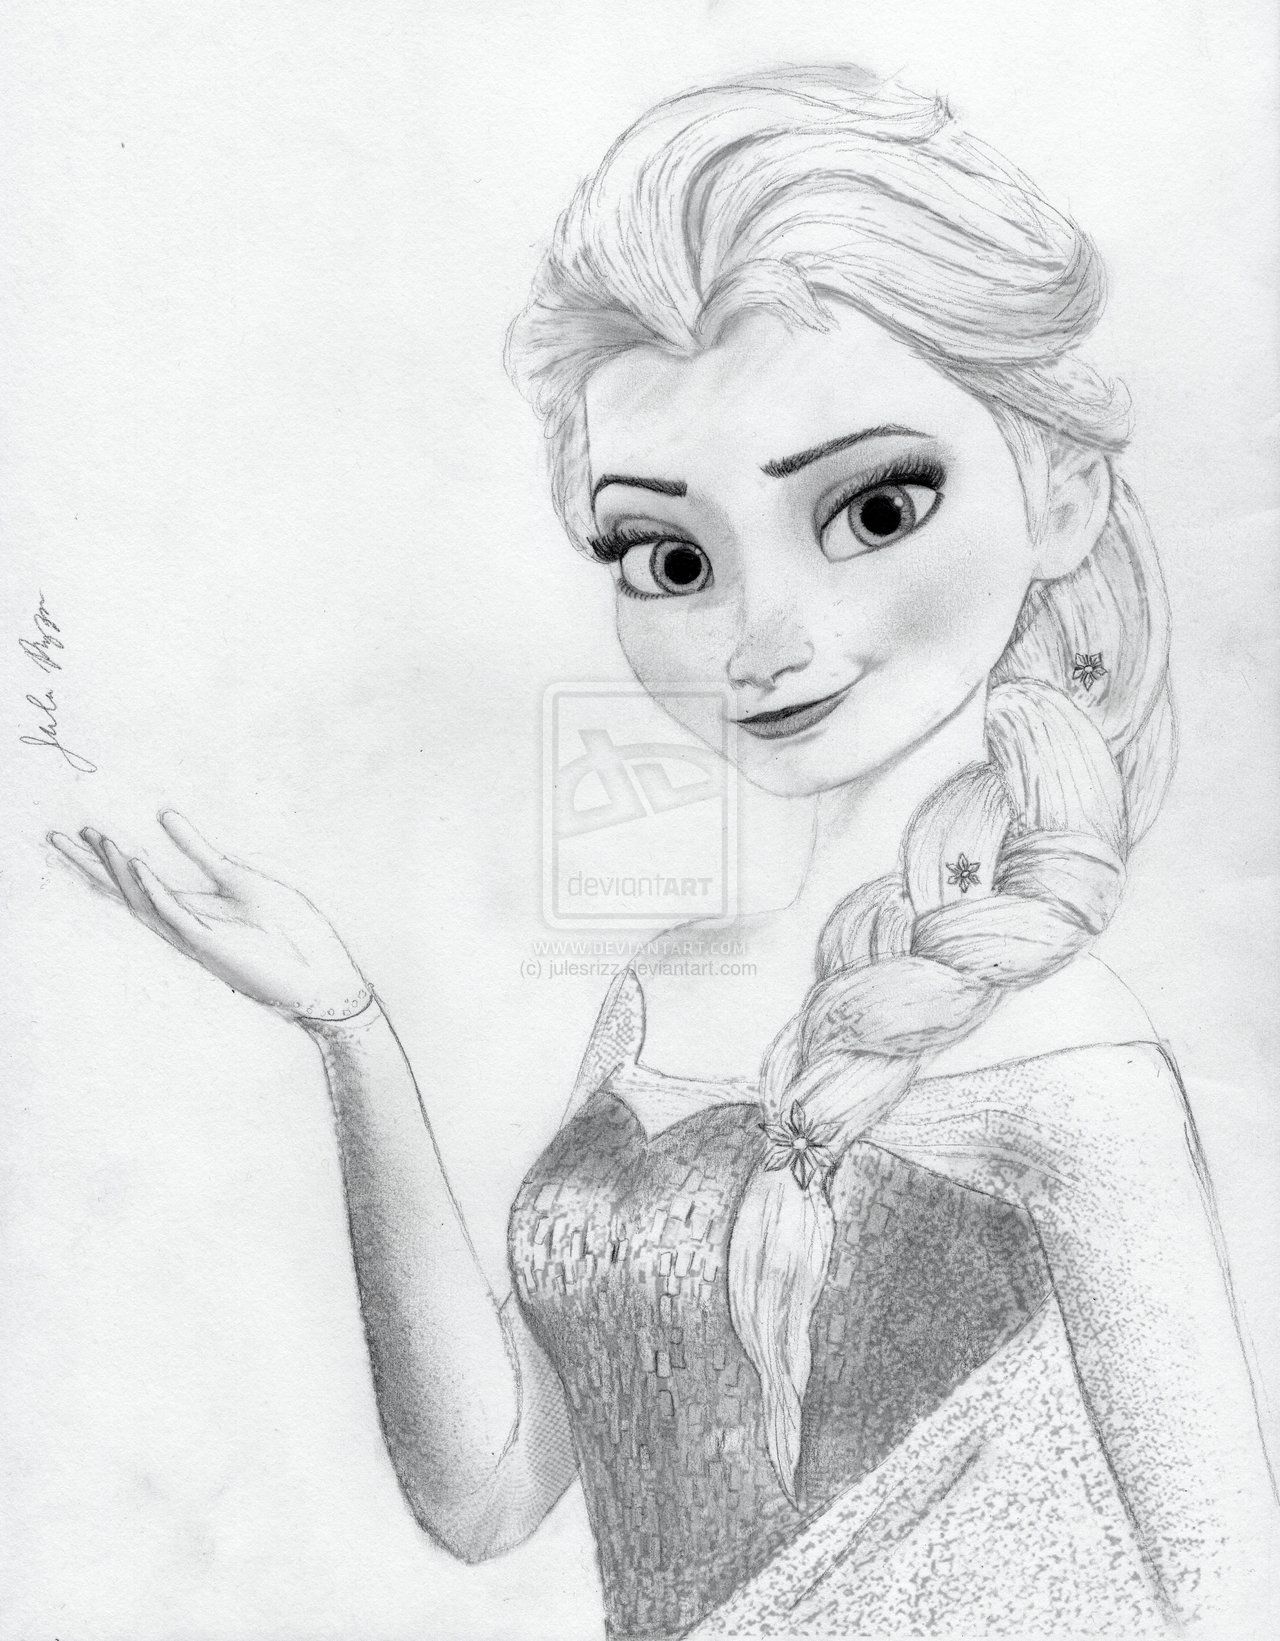 Elsa From Disney S Frozen By Julesrizz On Deviantart Disney Princess Drawings Disney Drawings Sketches Princess Drawings